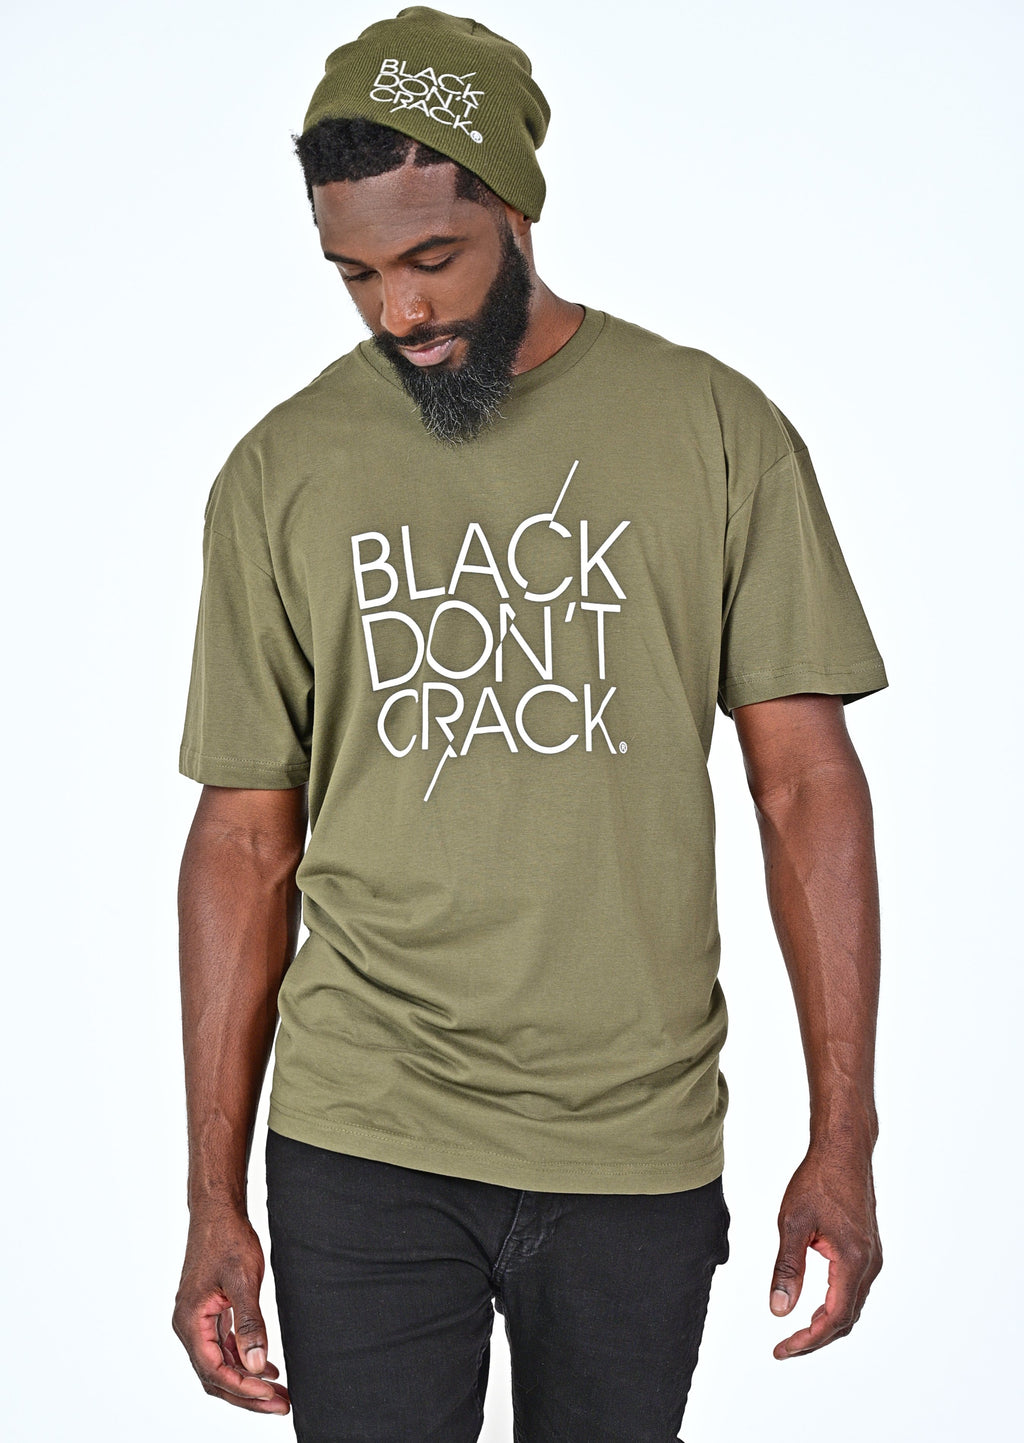 This Black Don't Crack casual, short sleeve, crew-neck t-shirt is your versatile tee for everyday activities. Our 4.3 oz. soft washed crew-neck t-shirt has an amazing feel that allows true comfort. Make this casual t-shirt a staple item in your wardrobe collection.